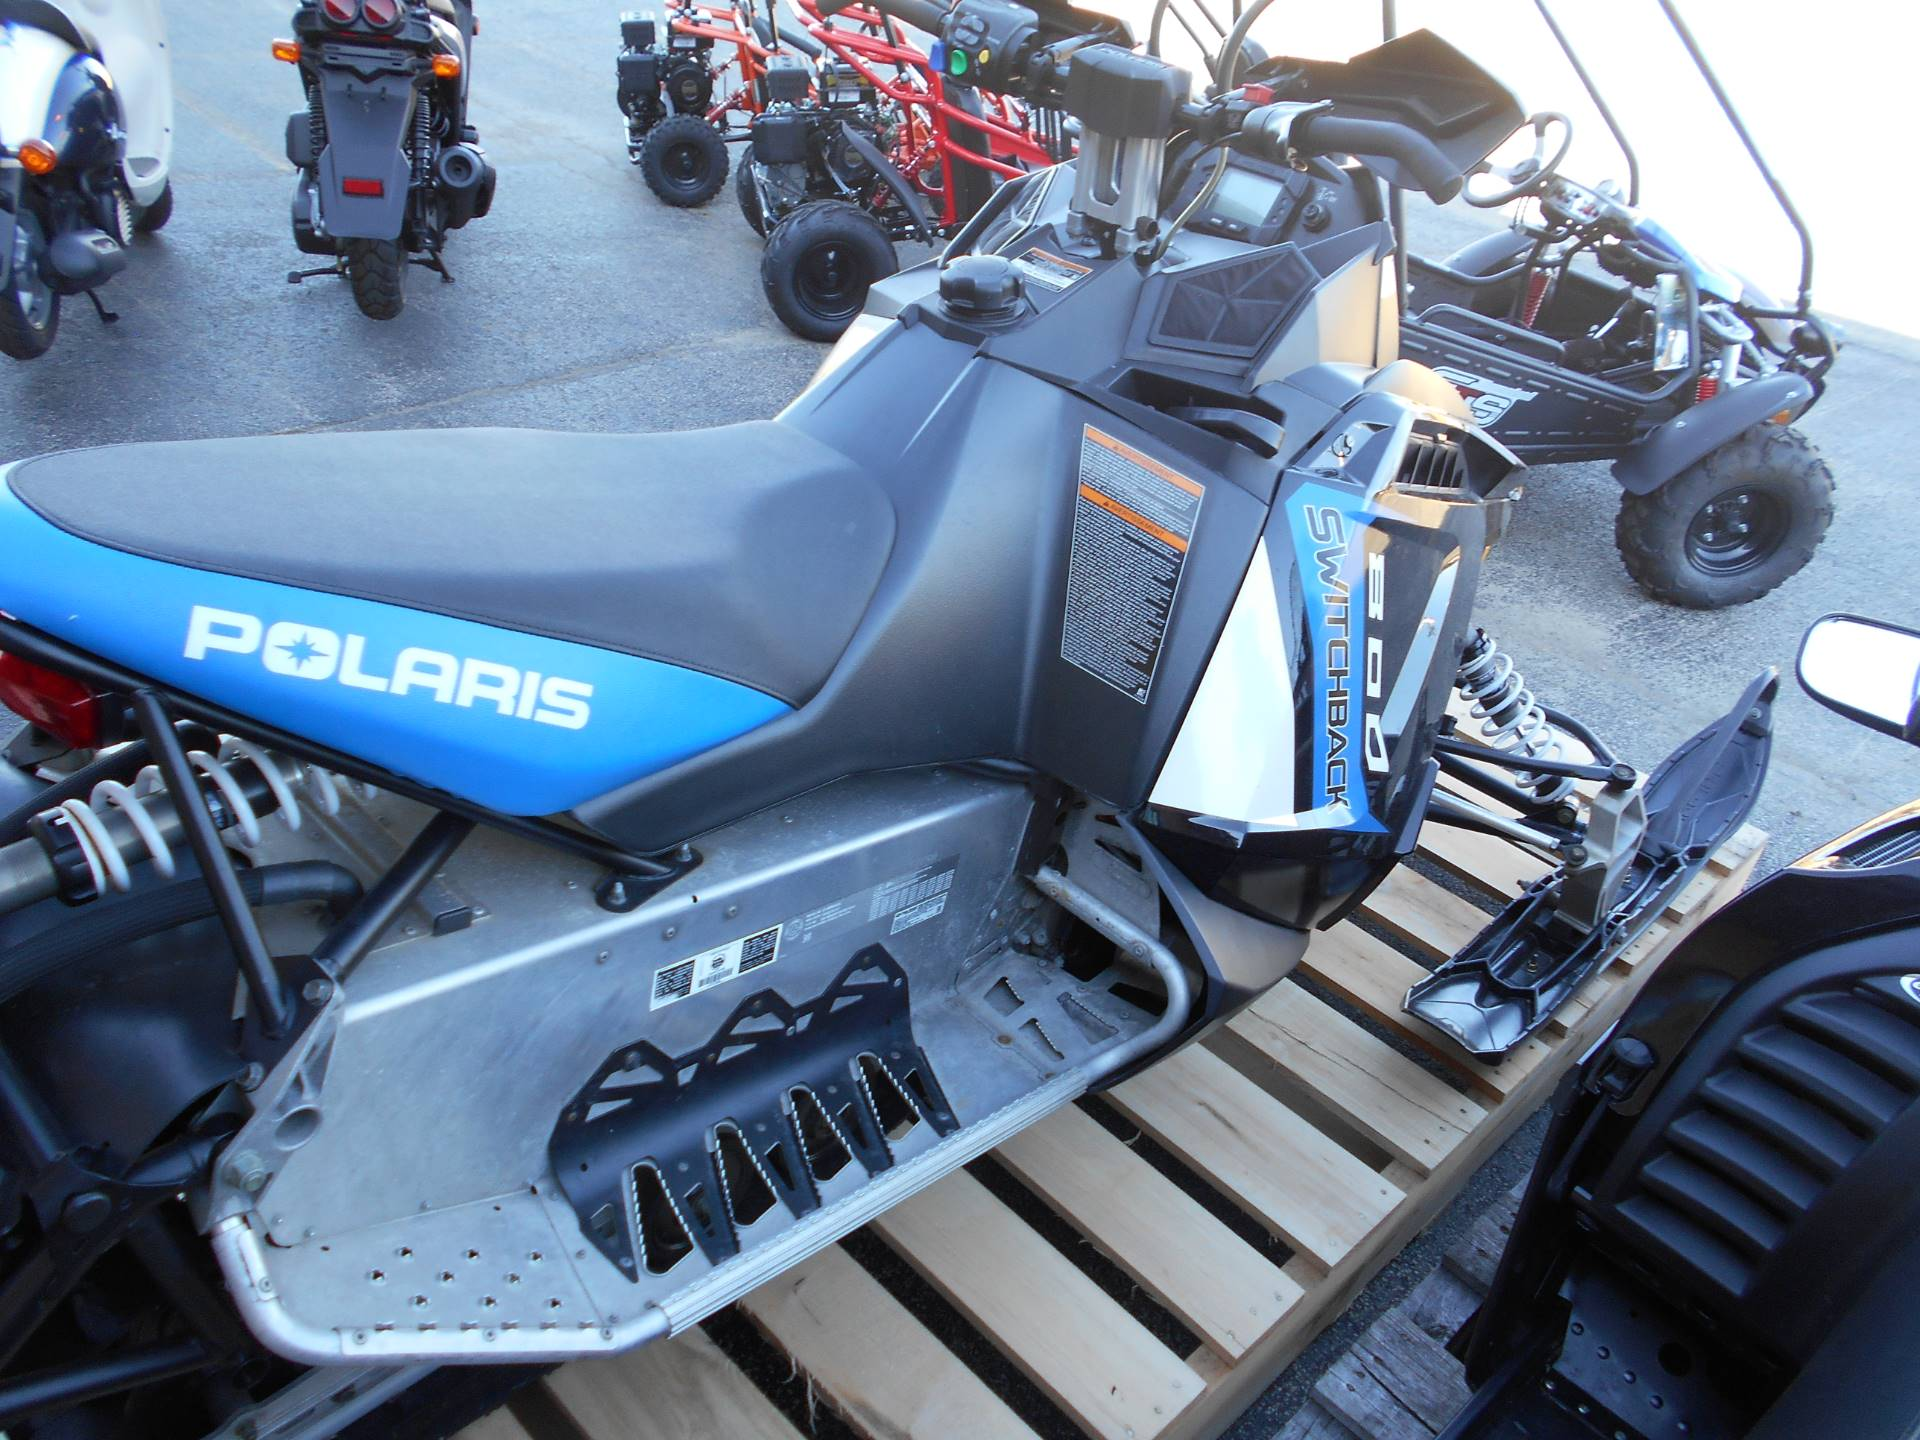 Used 2014 Polaris 800 Switchback® ES Snowmobiles in Belvidere, IL